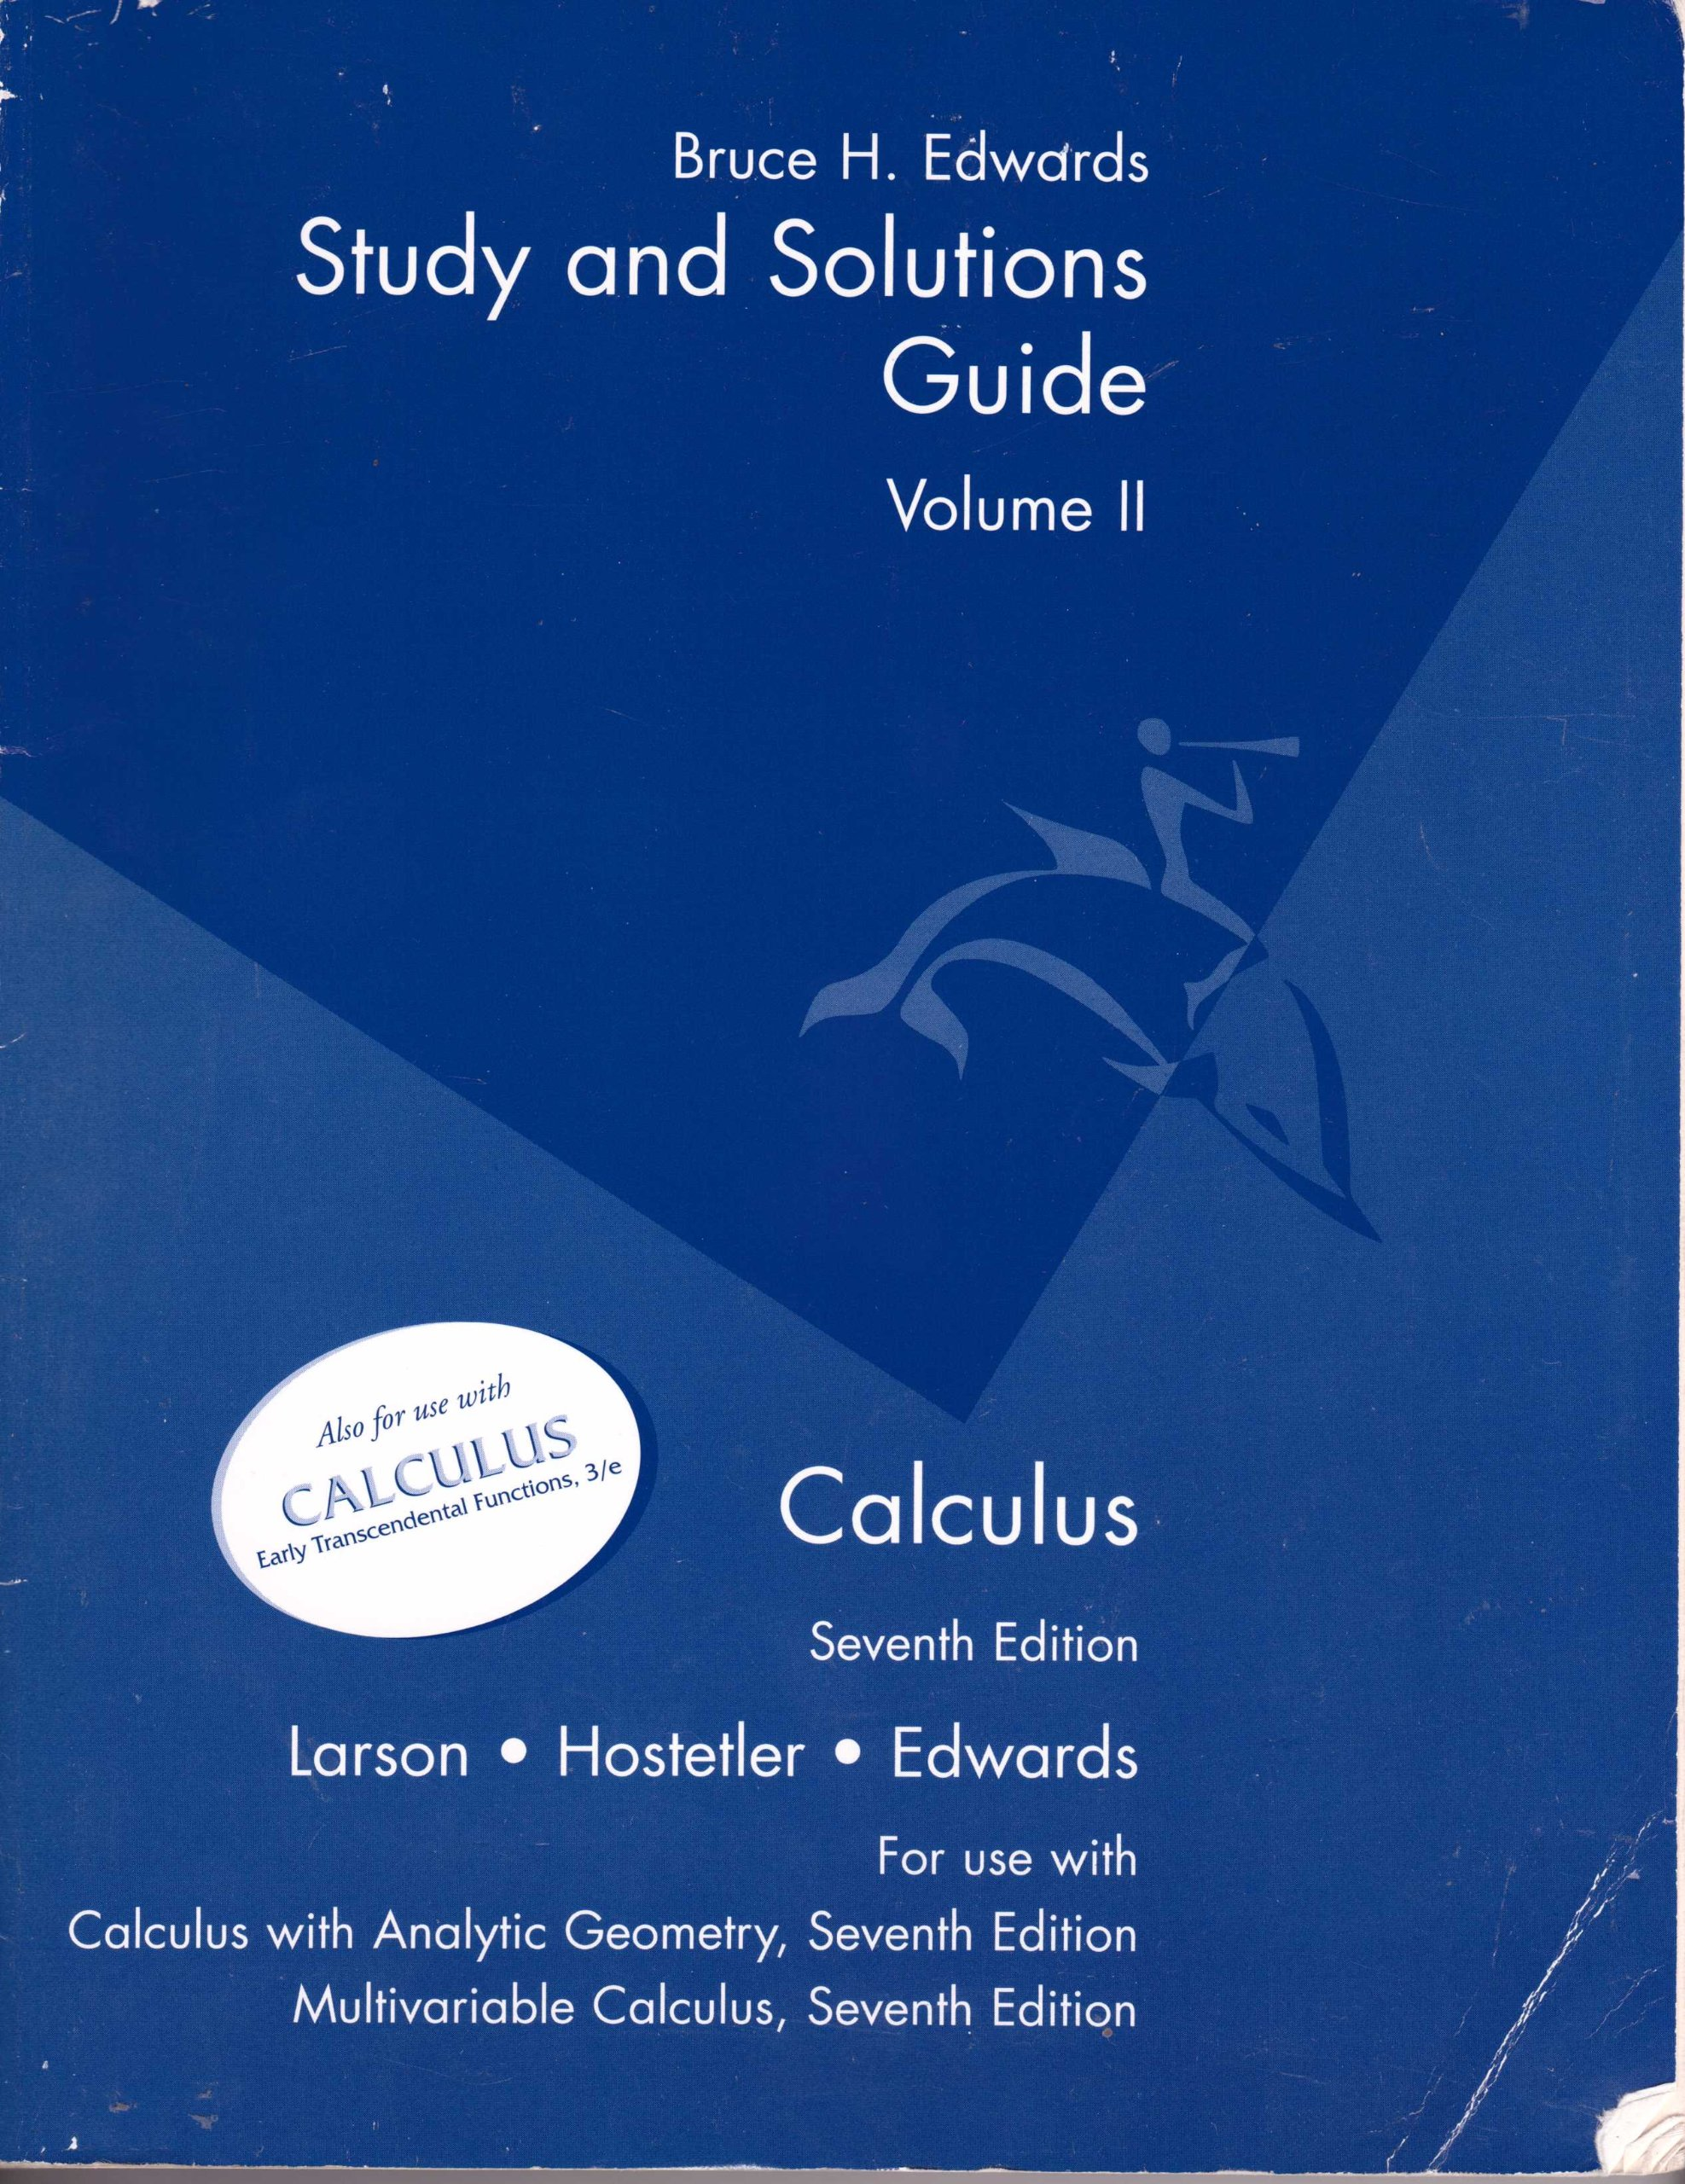 Calculus, 7th Edition, STUDY AND SOLUTIONS GUIDE, VOLUME II (FOR USE WITH:  Calculus with Analytic Geometry, 7th ed.; and Multivariable Calculus, 7th  ed., ...